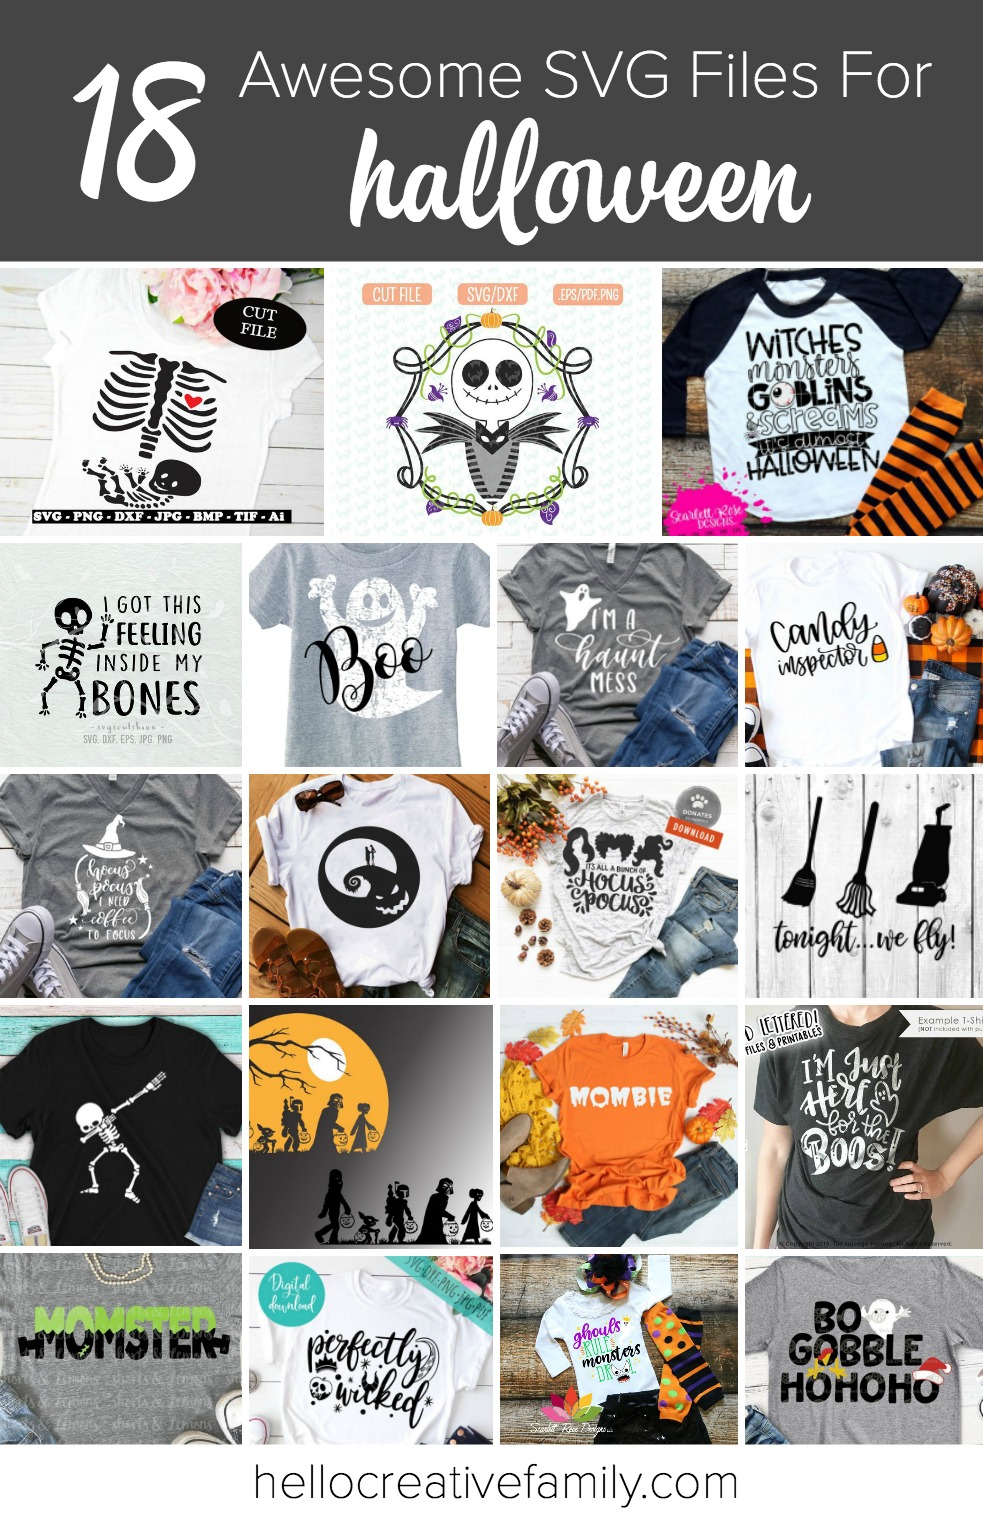 18 Awesome Halloween SVG Files To Cut With Your Cricut Or Silhouette! Pull out your cutting machine and celebrate Halloween in style! We are sharing 18 of our favorite Halloween SVG Files that are perfect for Easy DIY Halloween shirts! Make a last minute DIY Halloween costume with these fun files! #Halloween #Cricut #Silhouette #CricutProject #SVGFile